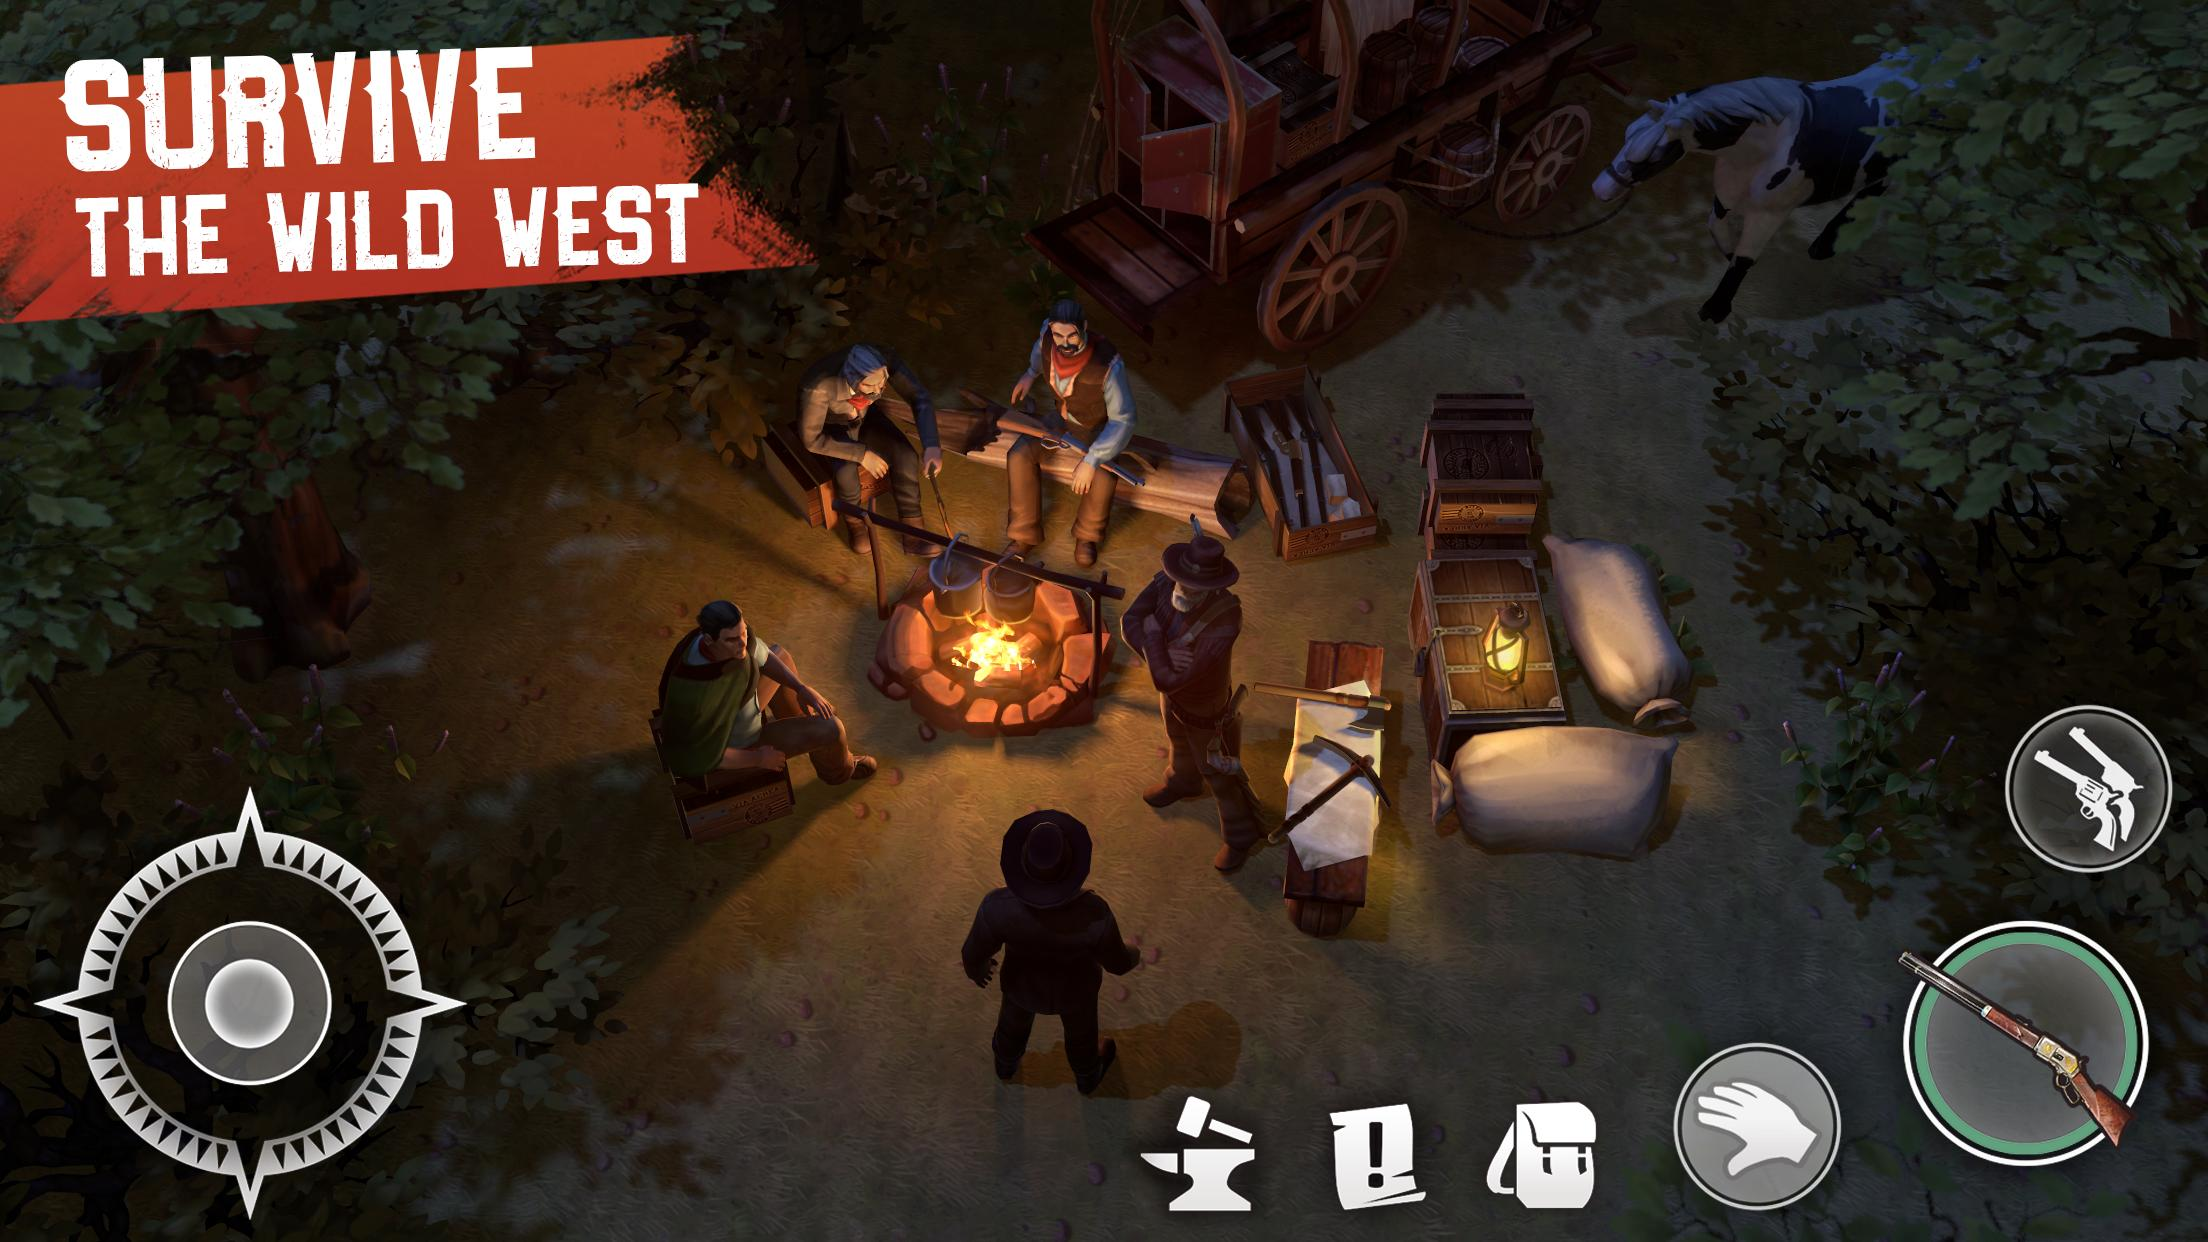 Westland Survival Be a survivor in the Wild West 0.17.1 Screenshot 3